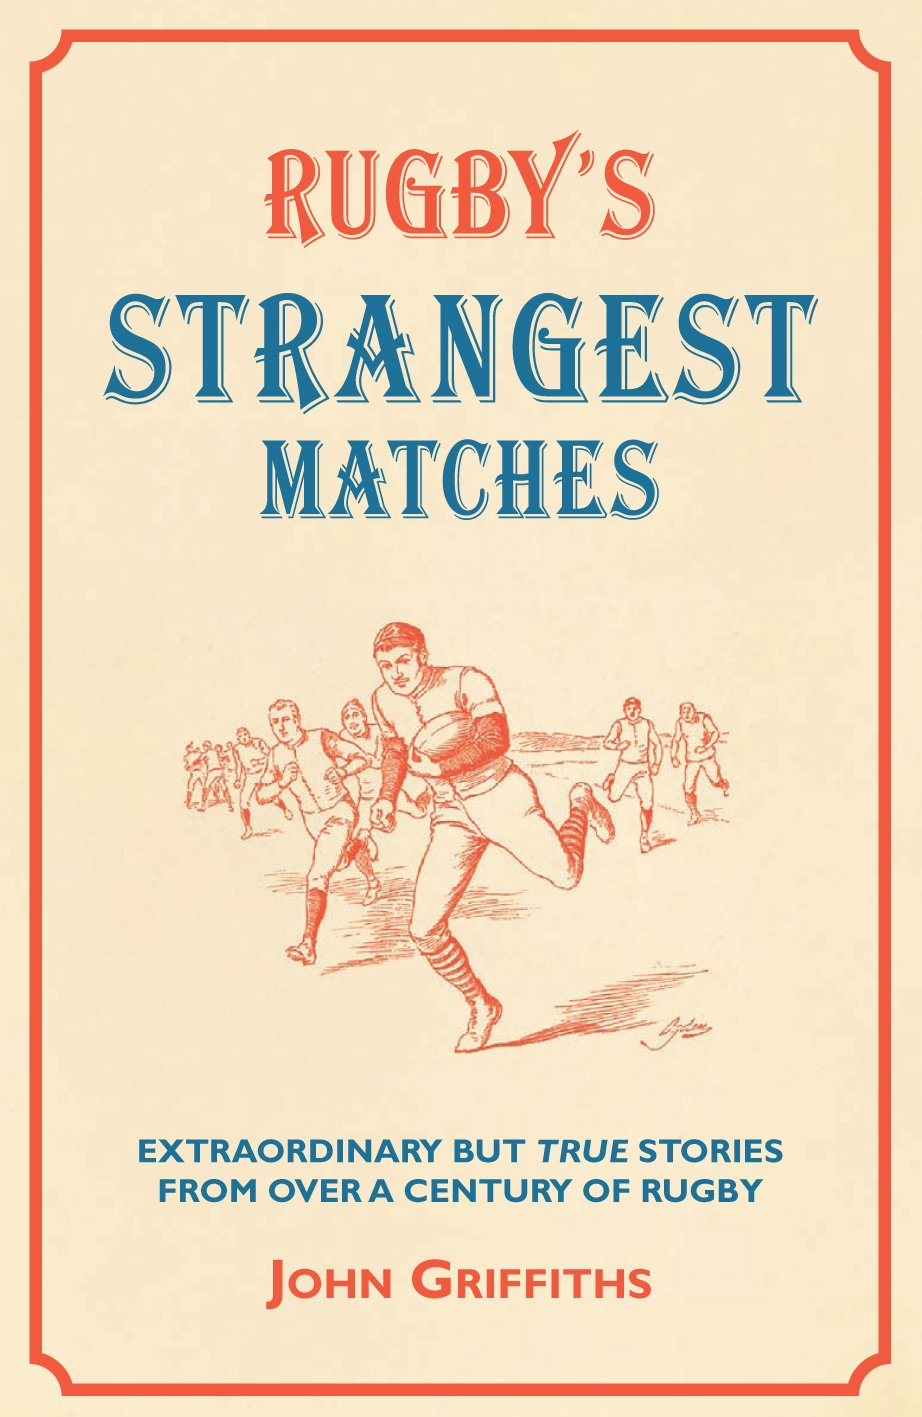 Download Rugby's Strangest Matches: Extraordinary But True Stories from Over a Century of Rugby (Strangest series) ebook